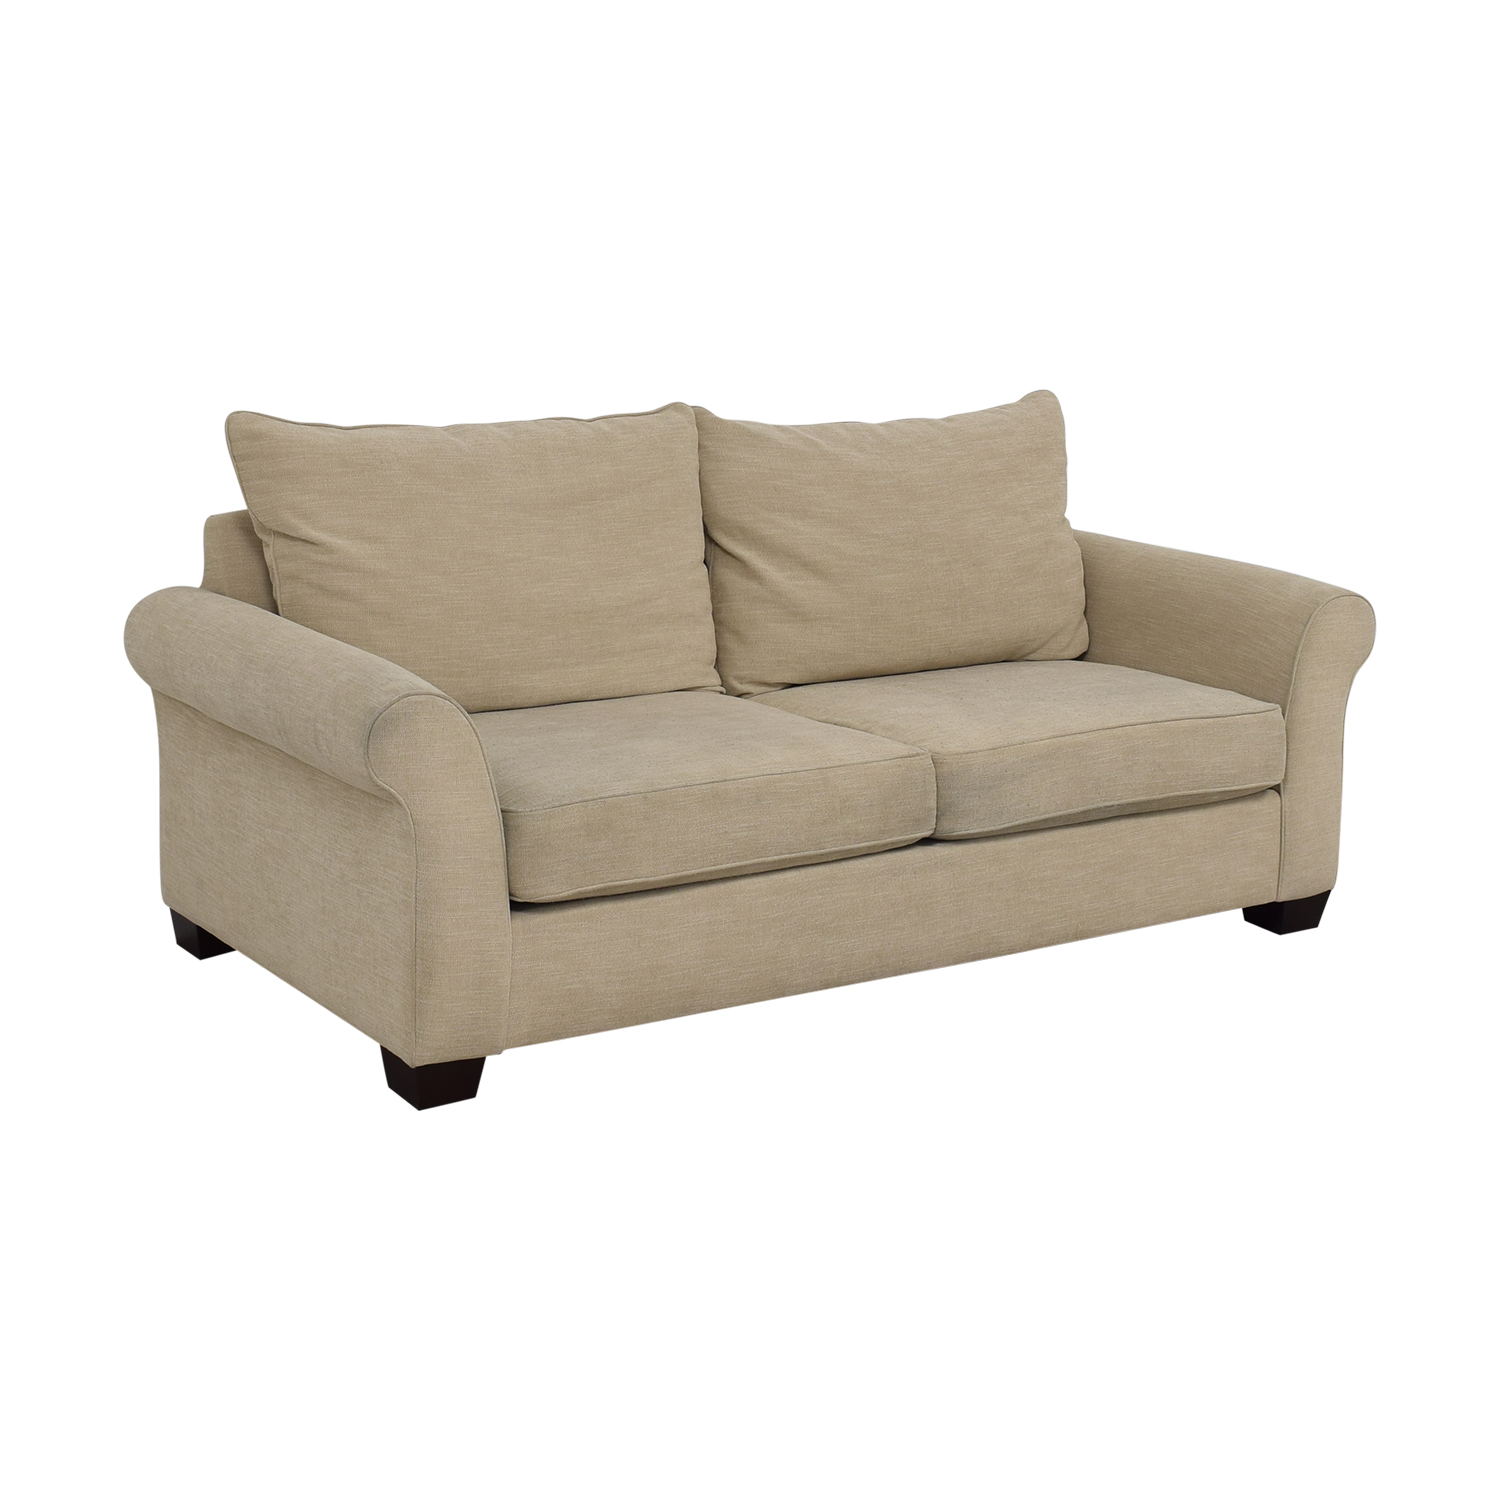 Pottery Barn Grey Roll Arm Upholstered Couch / Sofas